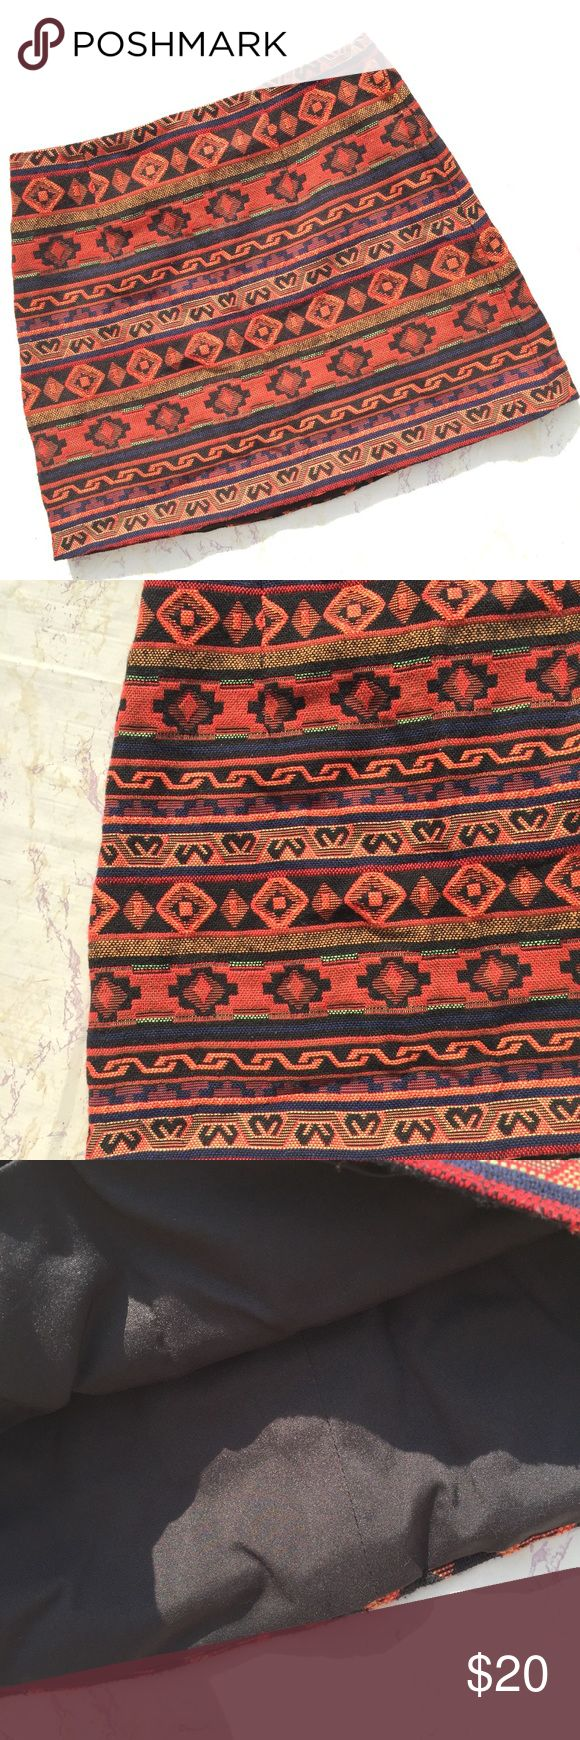 {Forever 21} Aztec Print Fall Mini Skirt Pretty Forever 21 fall tribal Aztec orange, black, and red mini skirt in excellent condition! Size Small. 14.5 inches. Forever 21 Skirts Mini